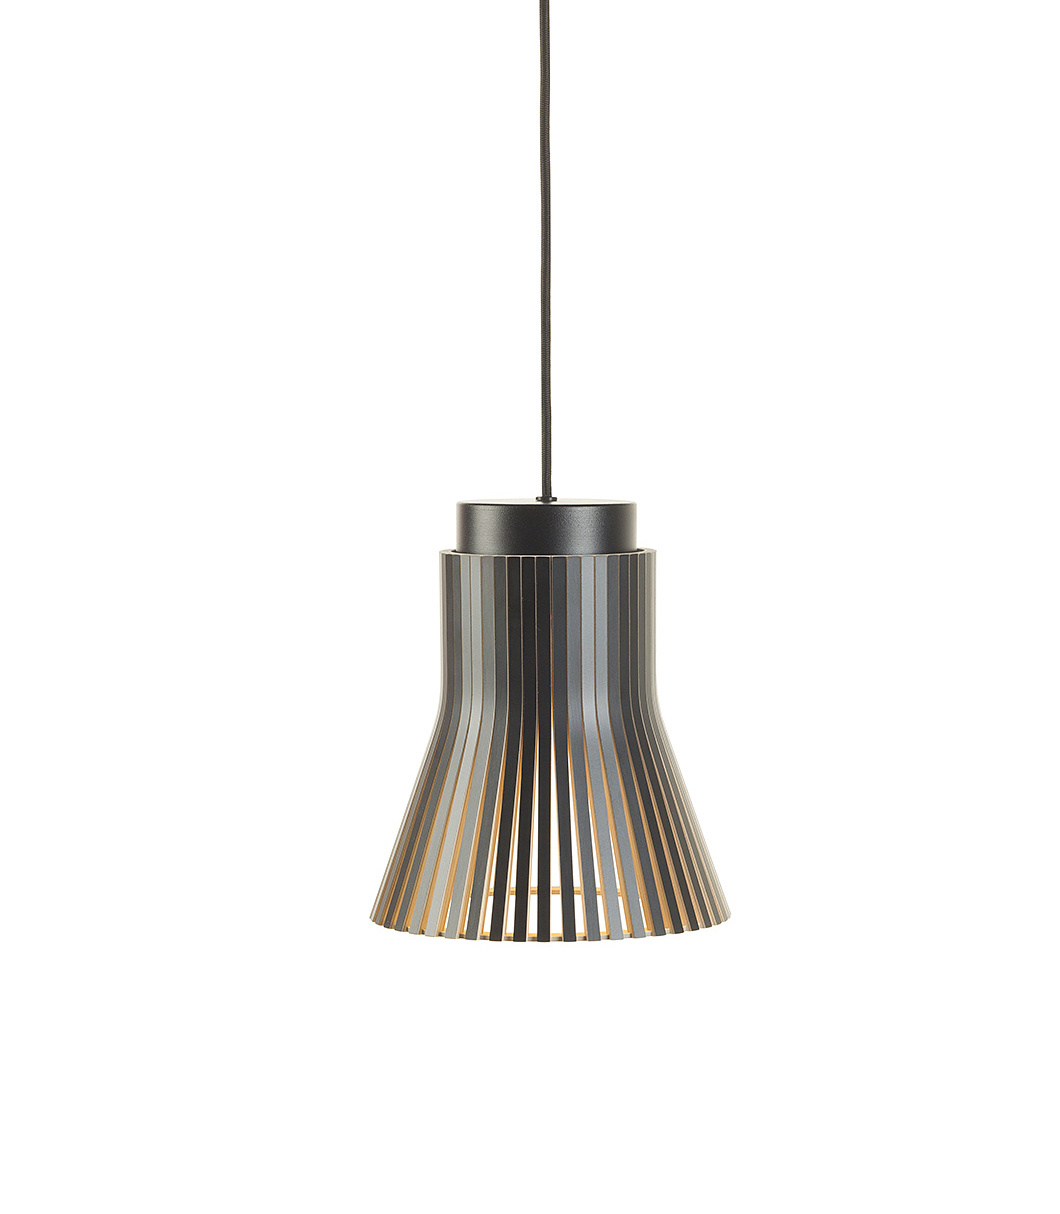 Petite 4600 Wooden Modern Pendant Lamp Secto Design | Secto for Fennia 1-Light Single Cylinder Pendants (Image 25 of 30)